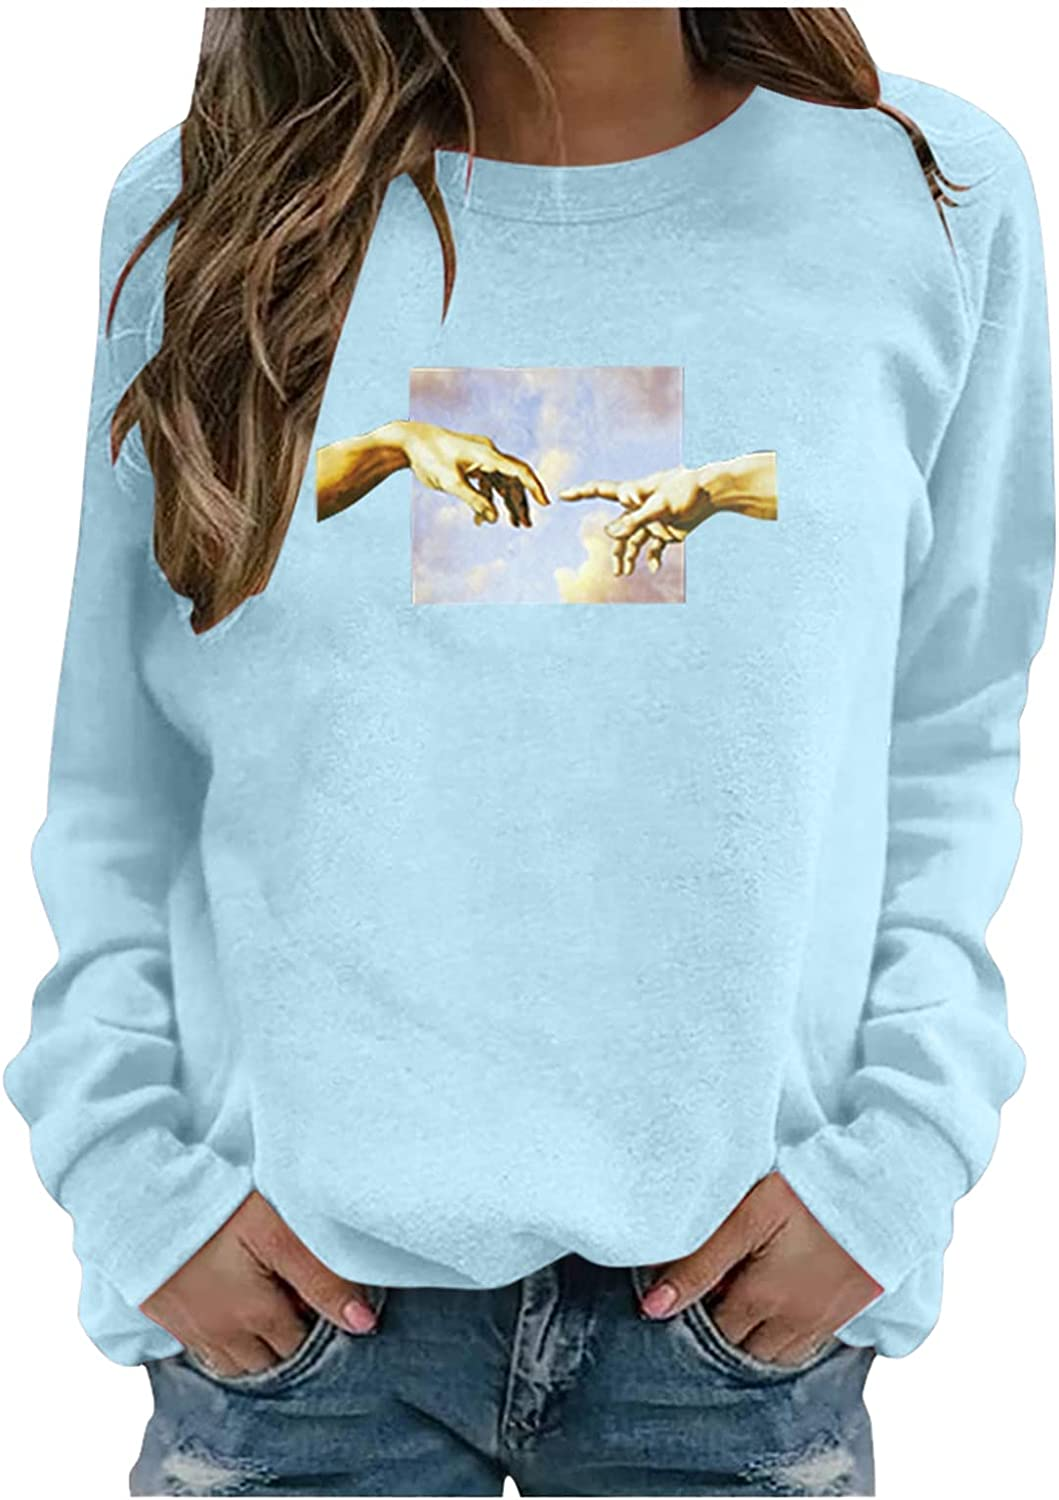 Women's Long Sleeve Sweatshirt Crew Neck Funny Graphic Casual Tunic Tops Loose Vintage Lightweight Pullover Blouse